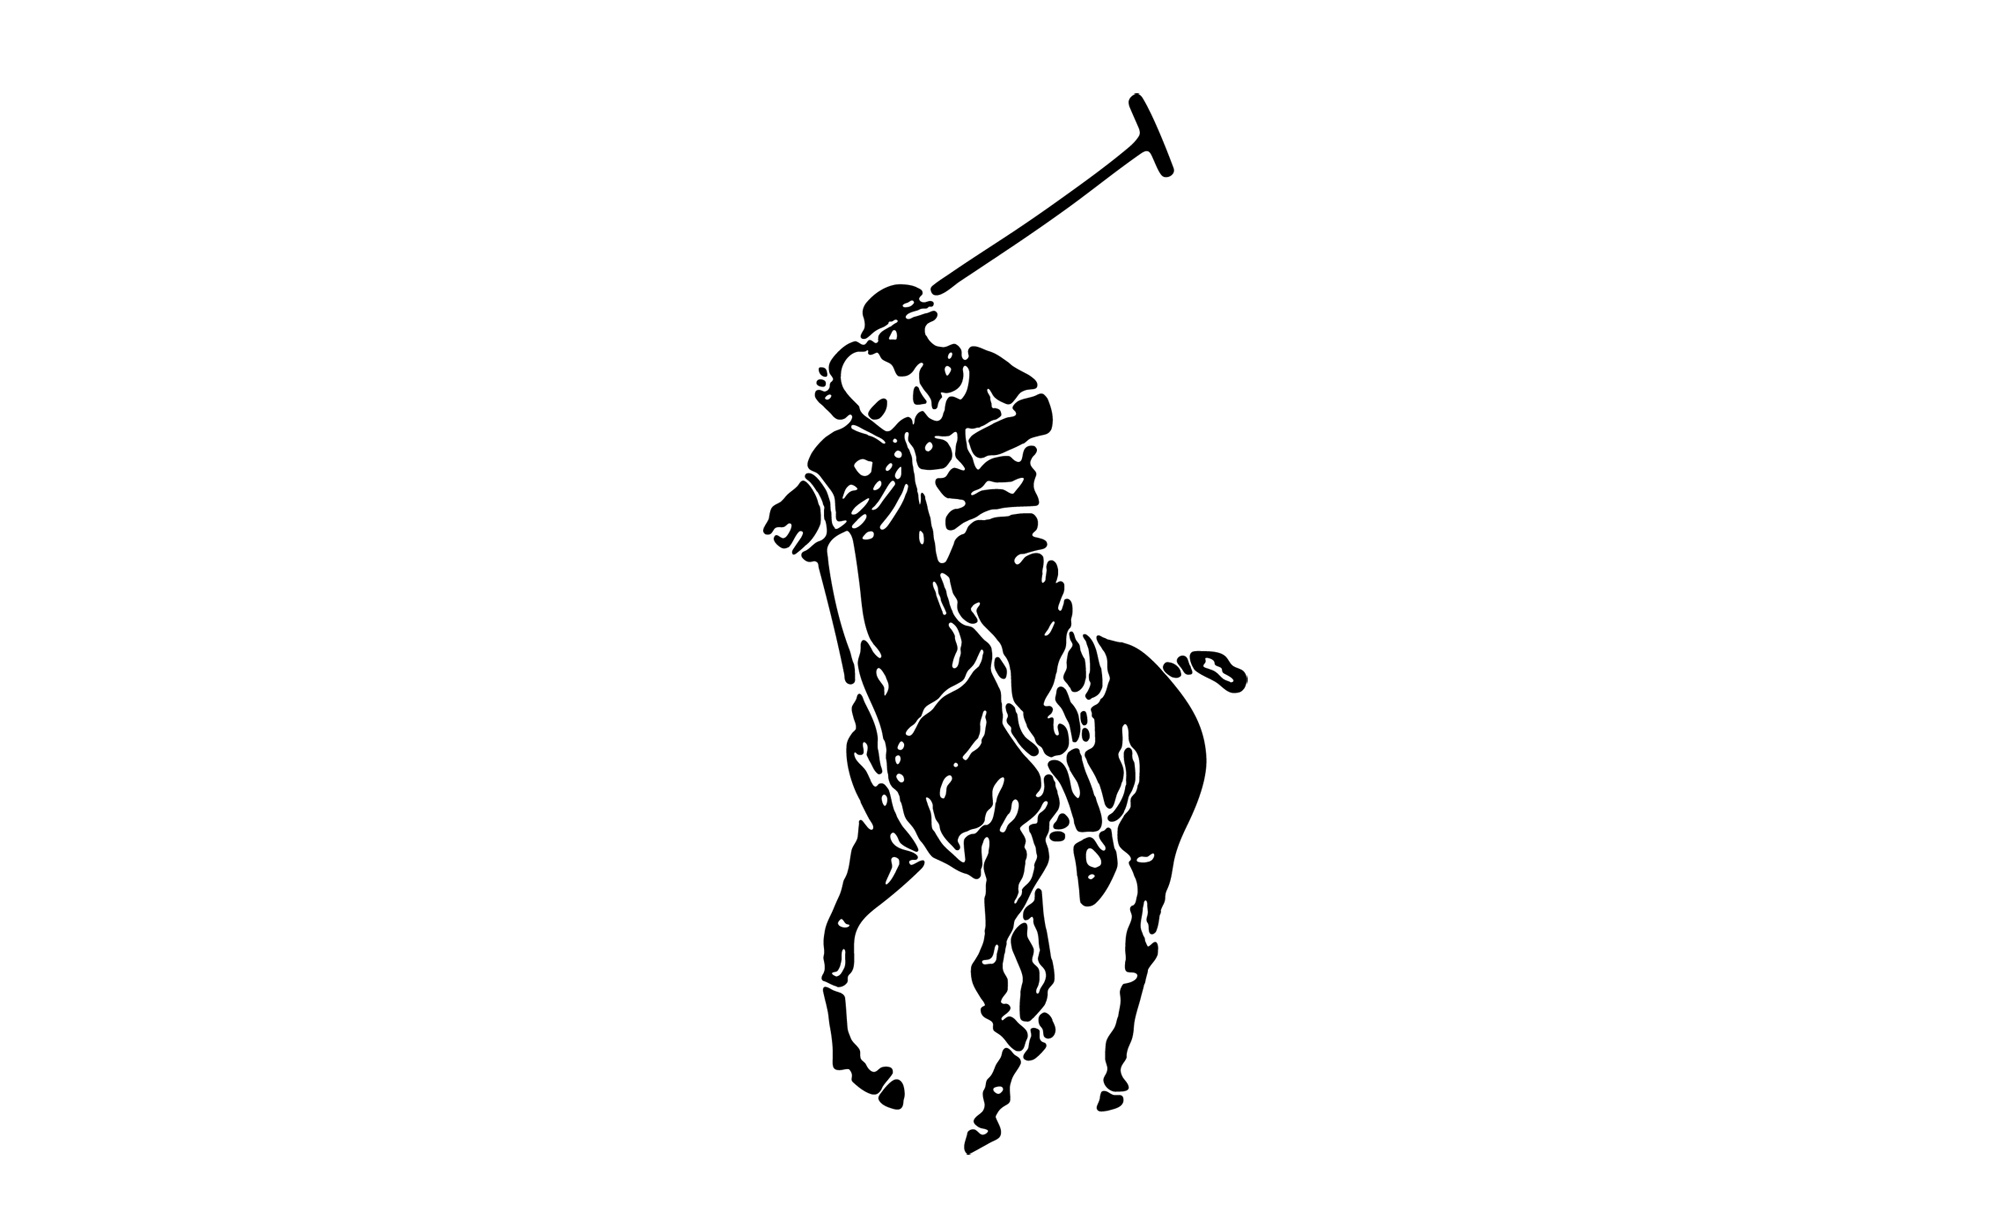 Polo Logo - Ralph Lauren Logo, Ralph Lauren Symbol, Meaning, History and Evolution